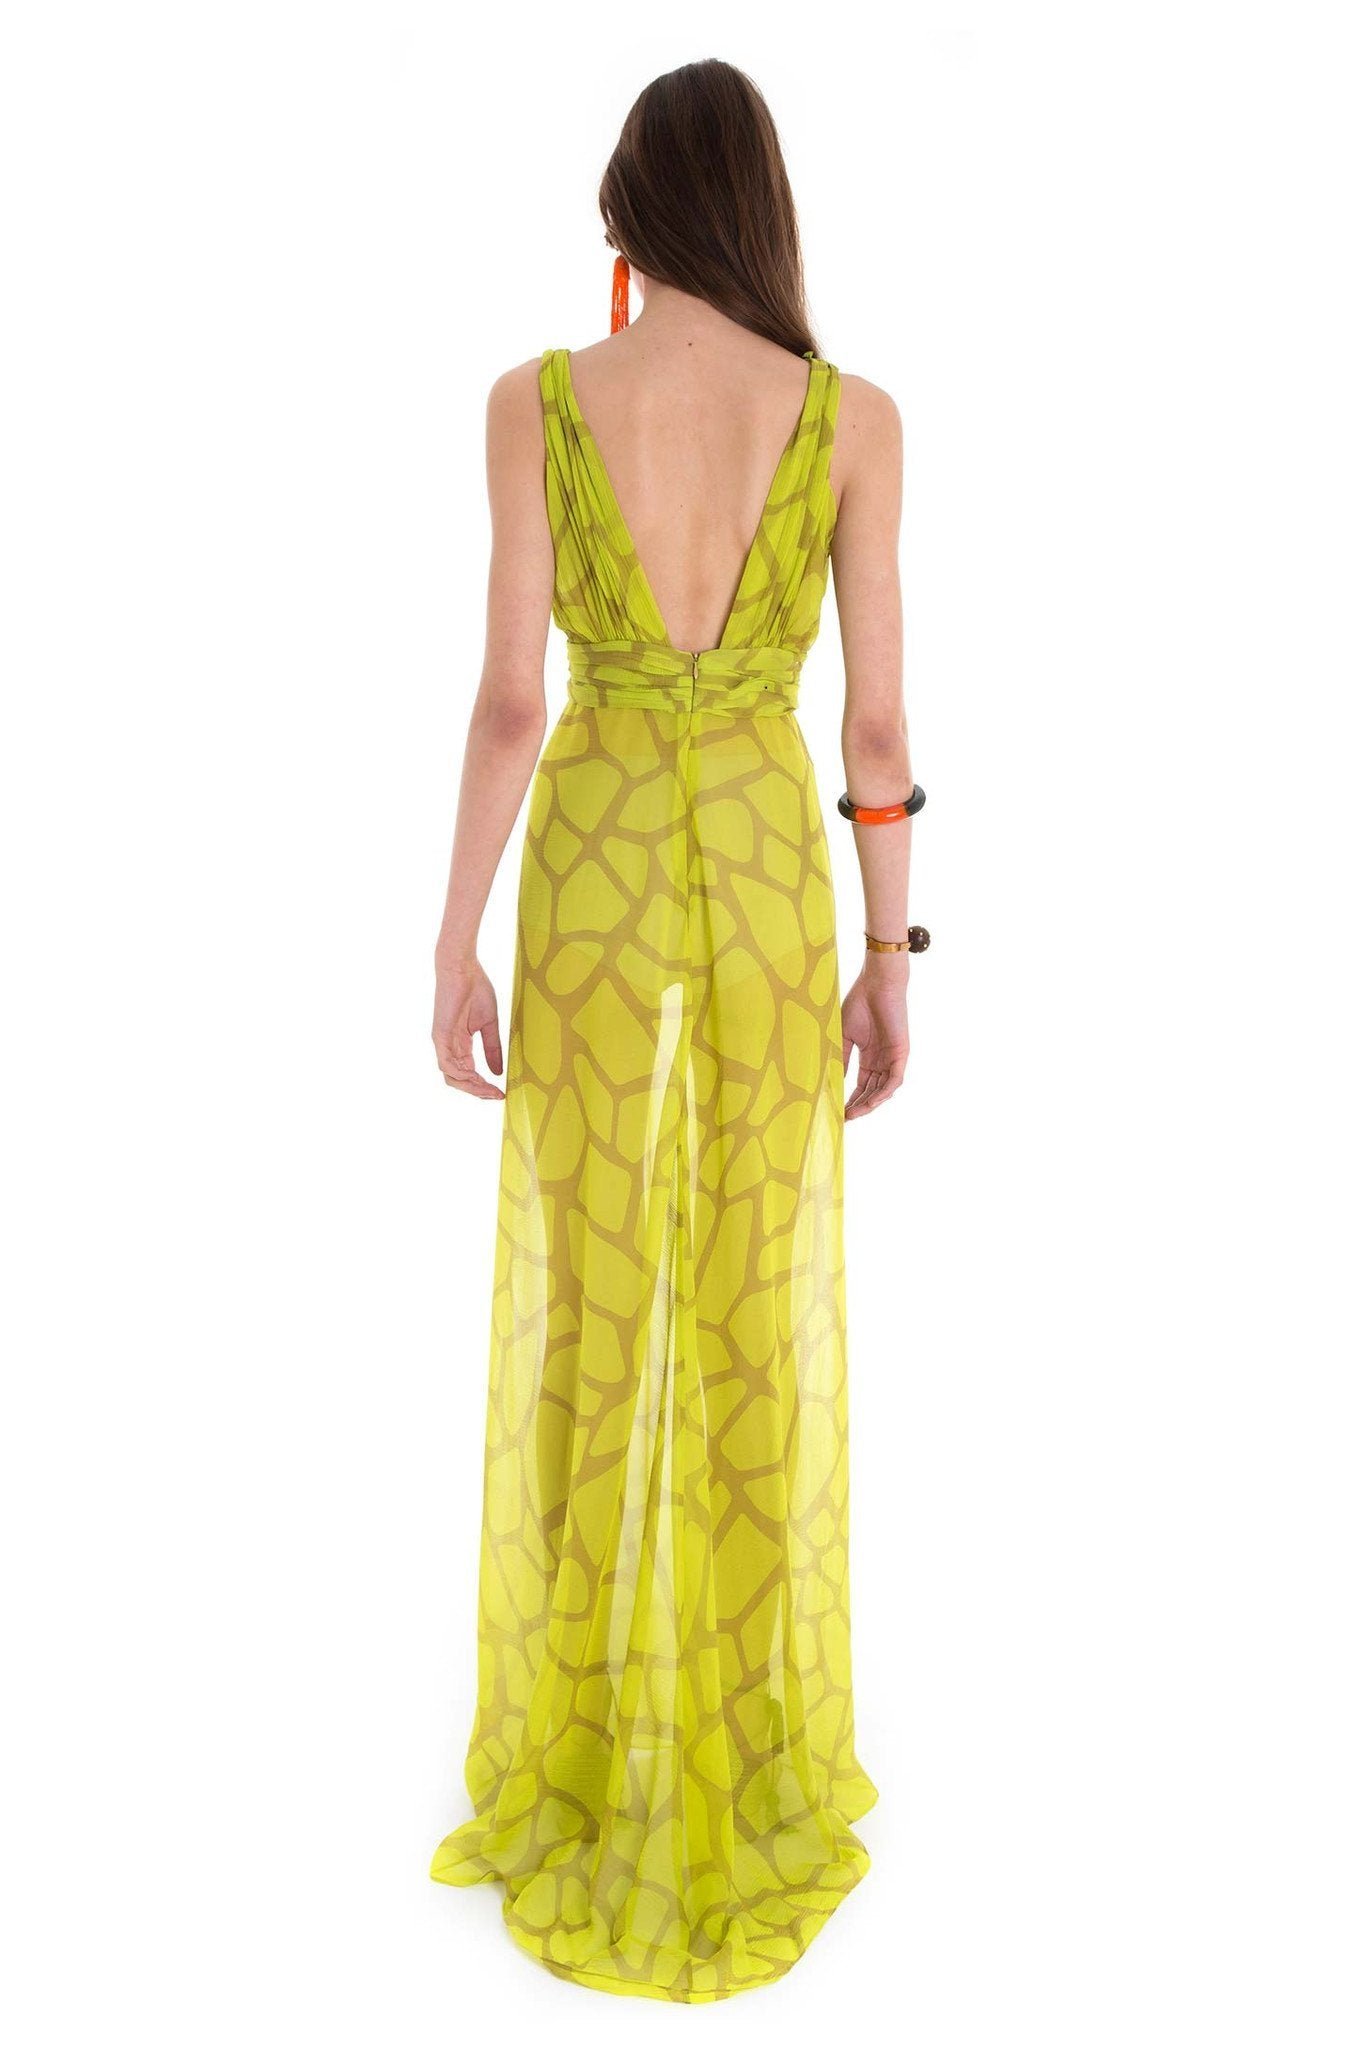 GREENISH GIRAFFE LONG DRESS